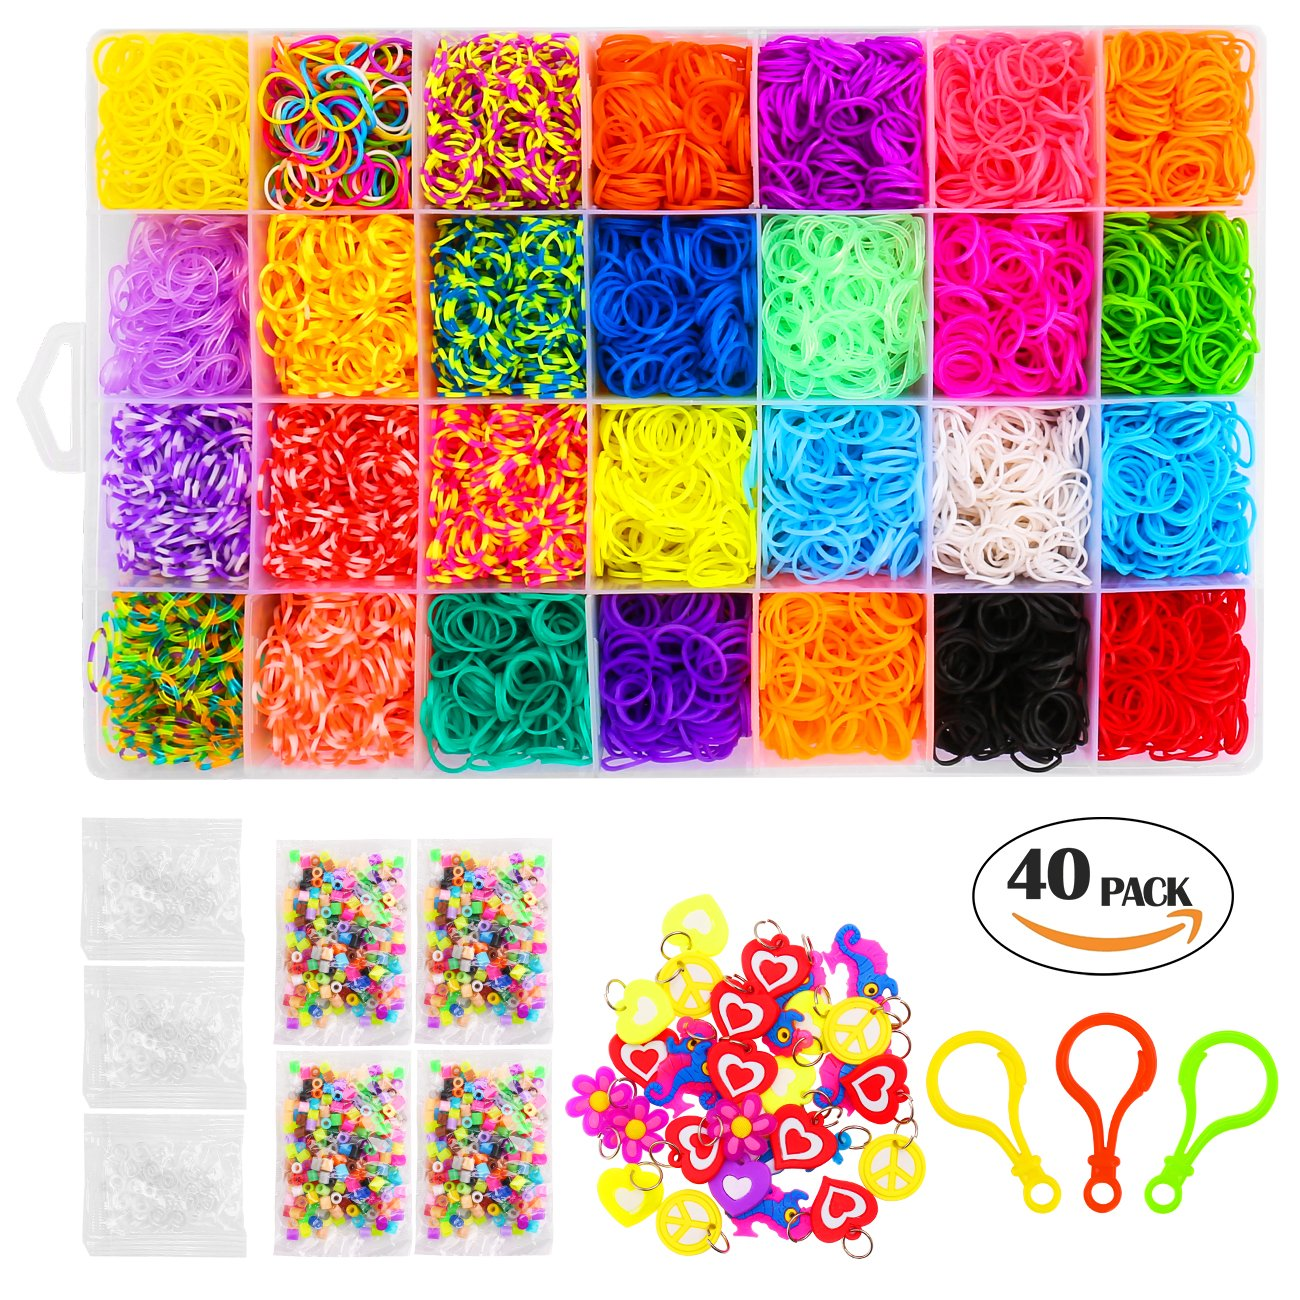 11500 Pcs Colorful Rainbow Rubber Bands Refill Kit Set Box, DIY Crafts Rubber Bracelets for Kids with 28 Colors